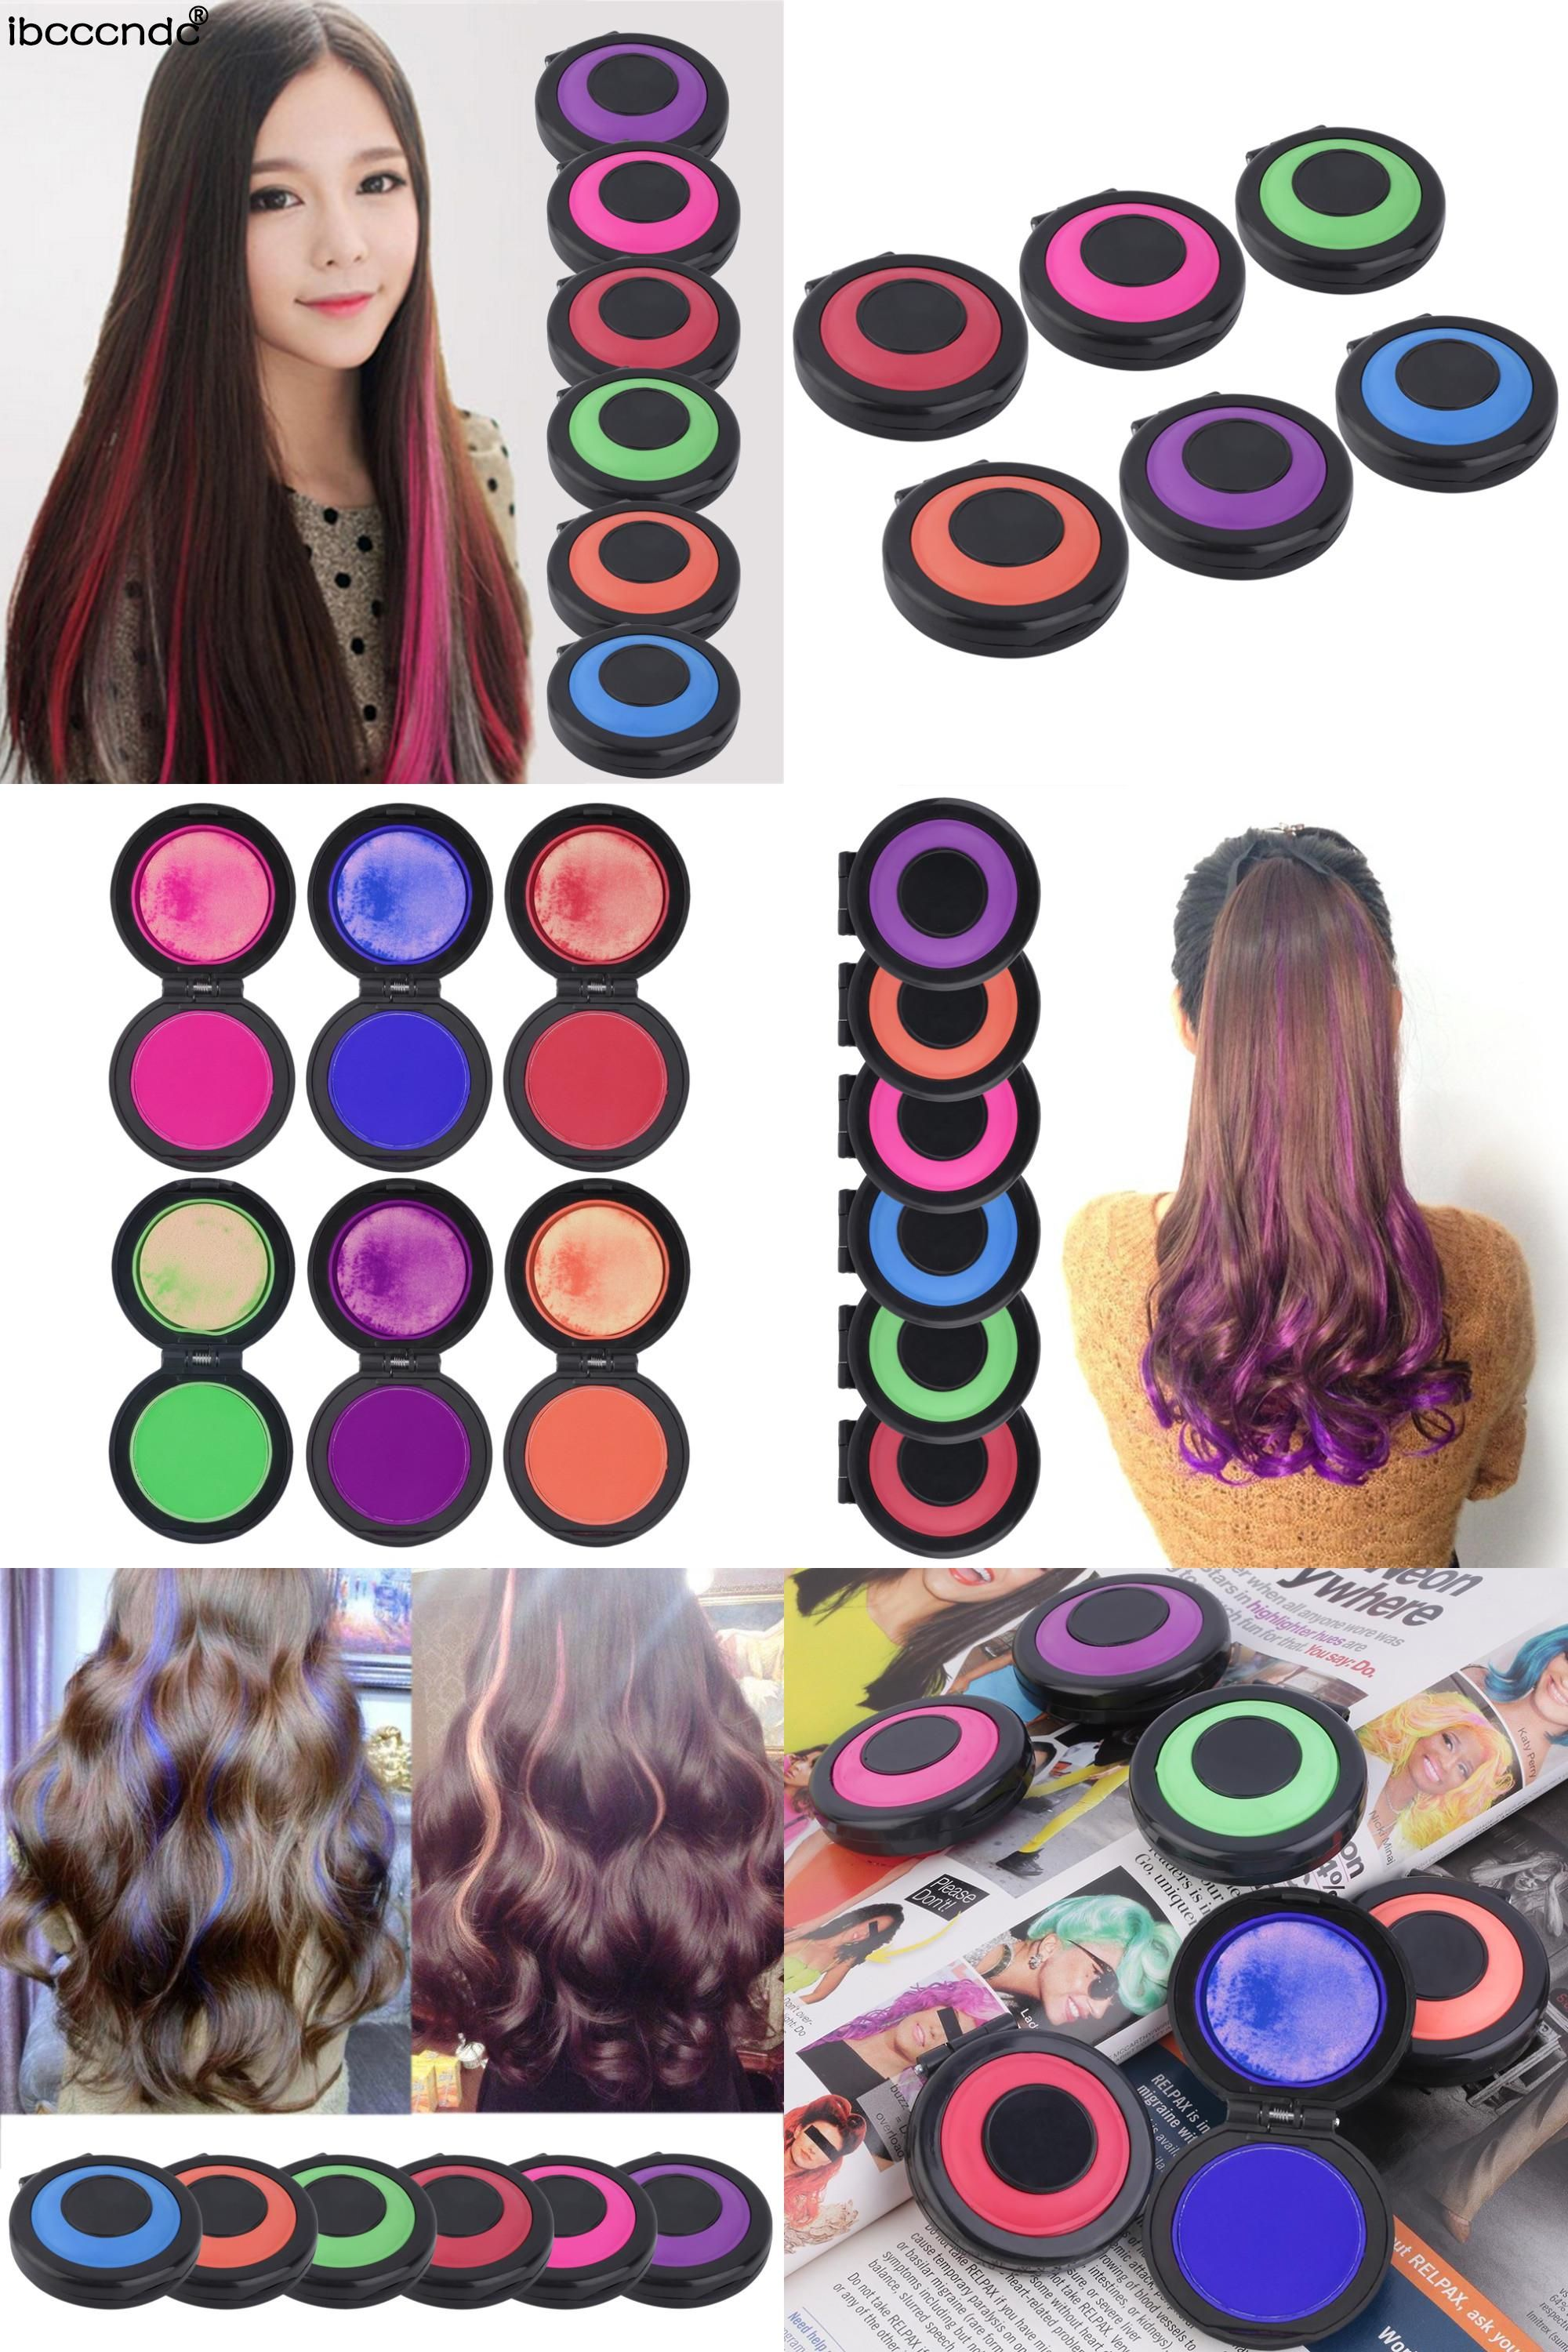 Visit to buy new professional 6 colors temporary hair dye powder visit to buy new professional 6 colors temporary hair dye powder cake styling hair solutioingenieria Gallery